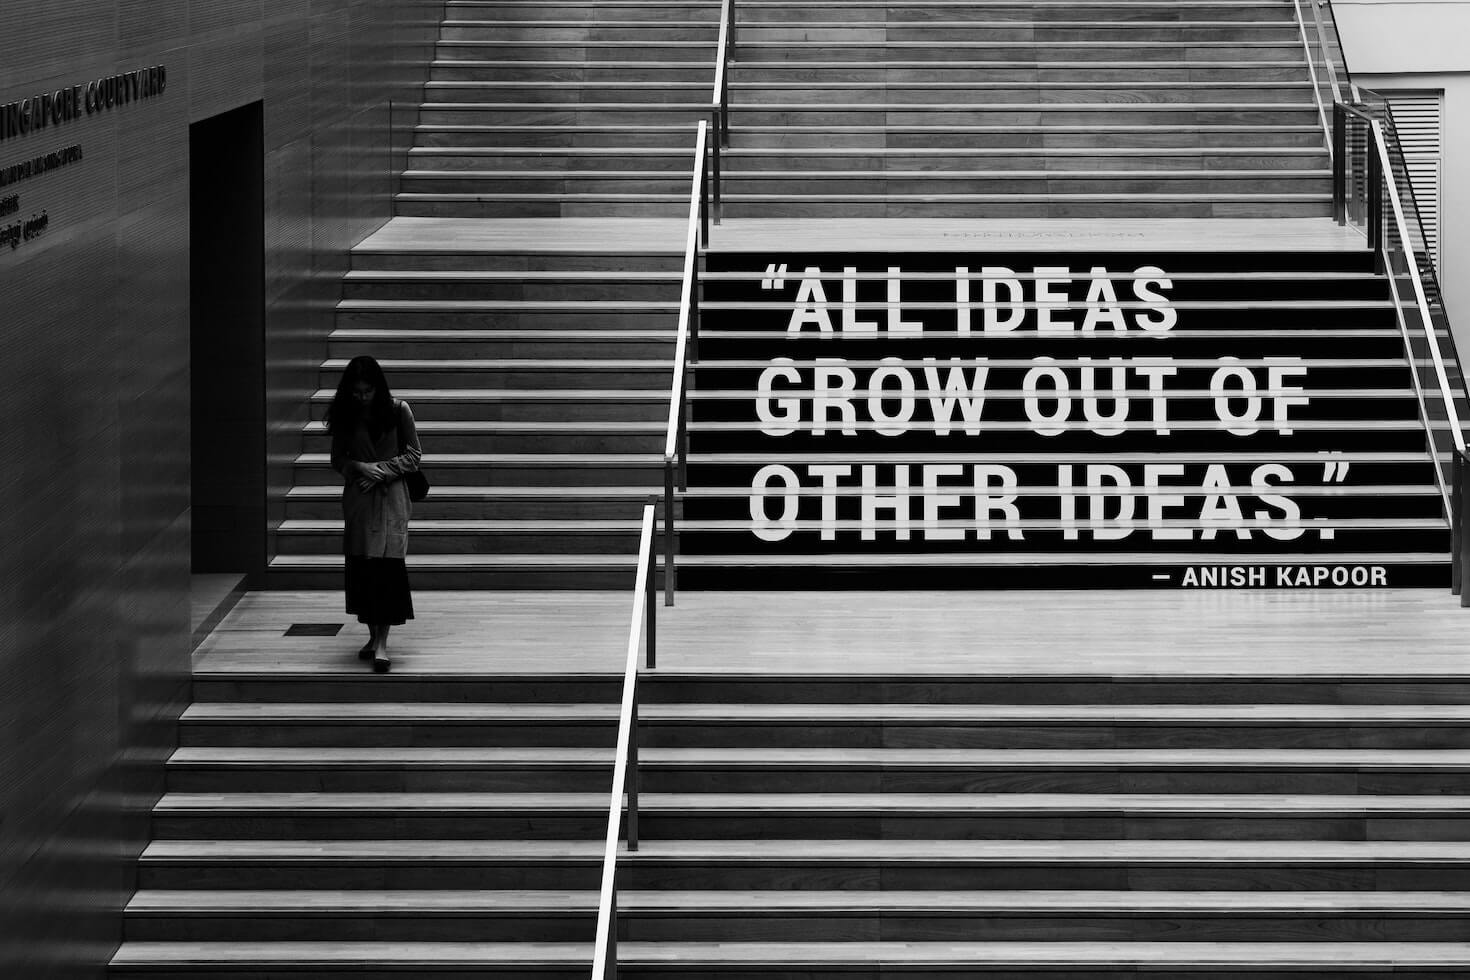 Quote op een trap: All ideas grow of other ideas